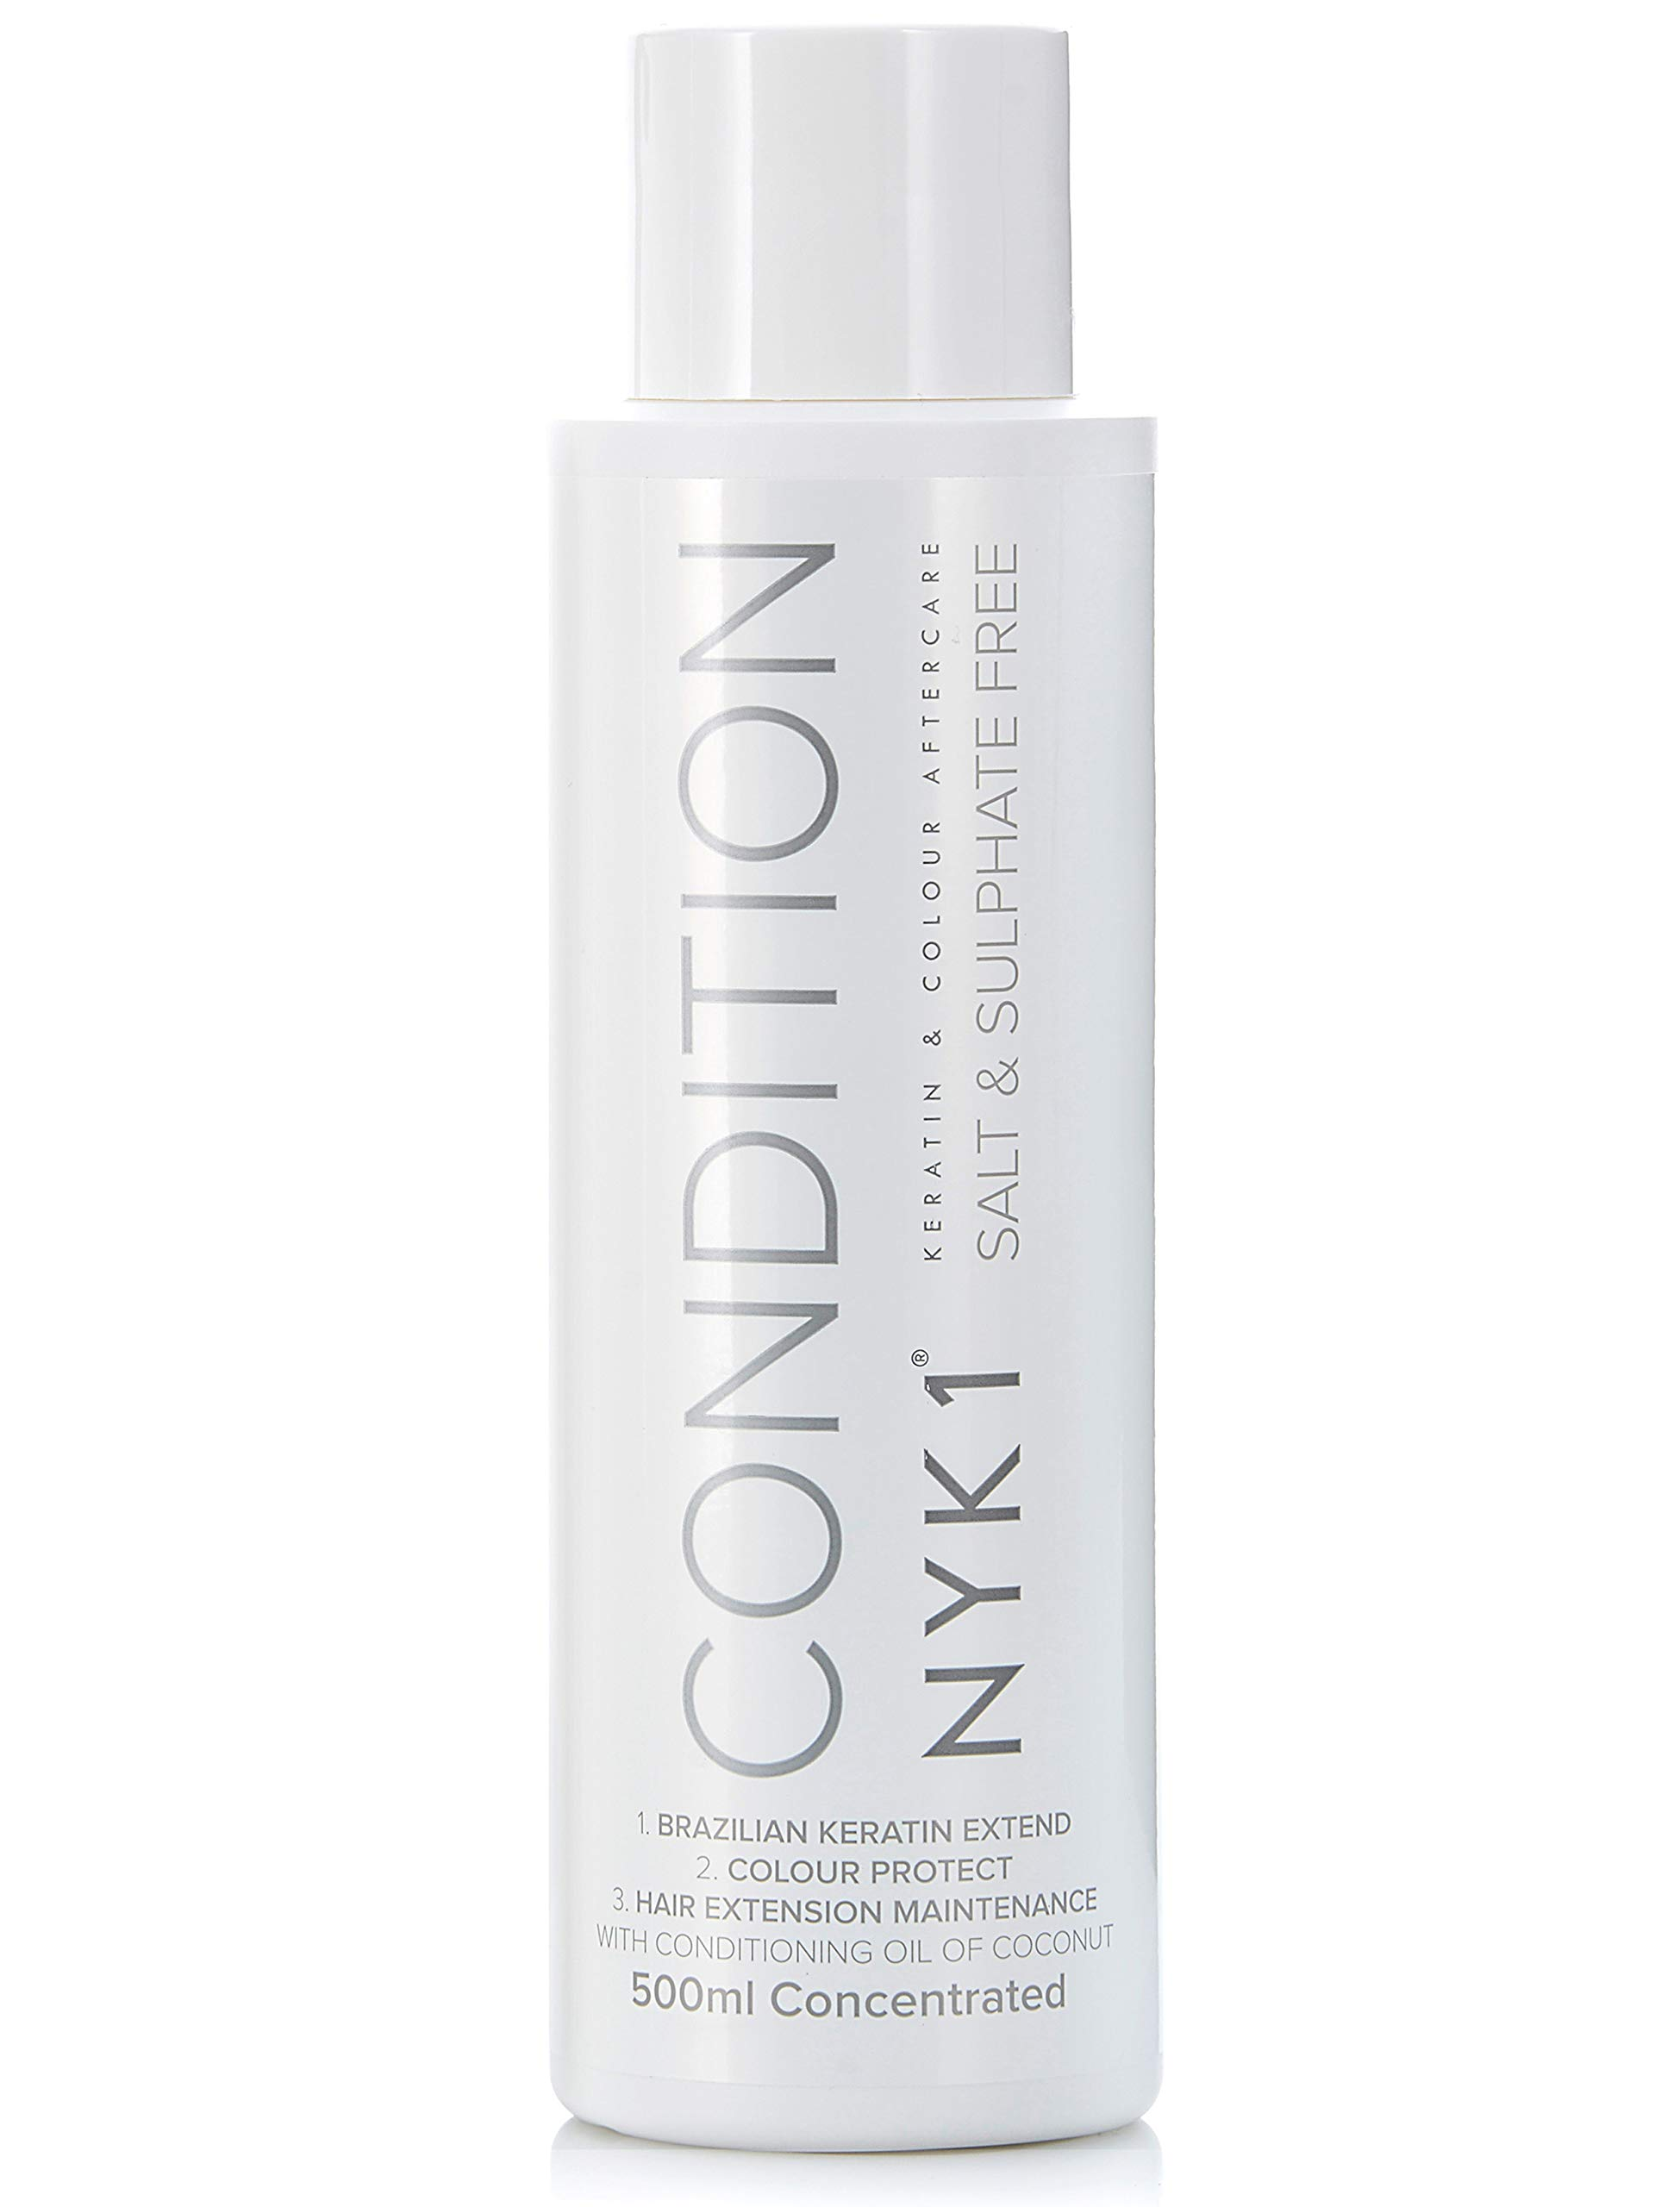 SALT SULFATE FREE CONDITIONER for Color Treated Hair (17 Fl Oz / 500ml) Best Hair Aftercare for Extensions (Unisex) Hair Color and Keratin Kit Treatment Straightening Damaged After Care Paraben Free